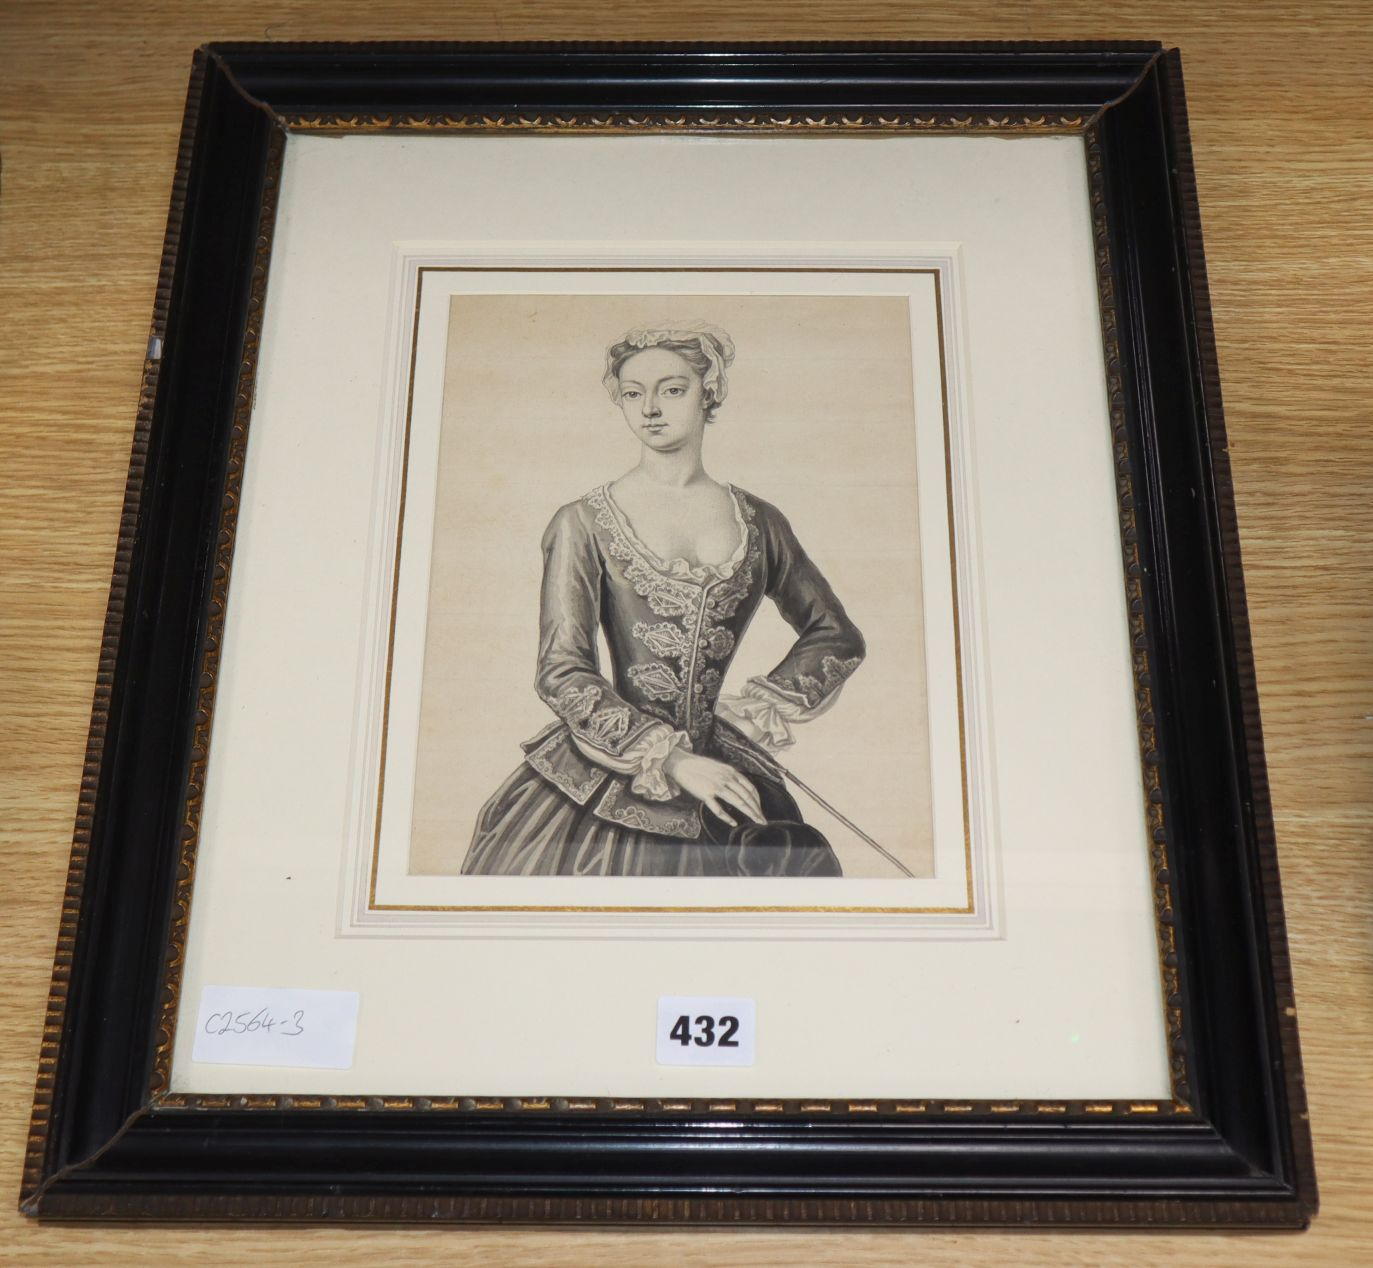 Lot 432 - 18th century English School, ink and wash, half length portrait of a lady, 23 x 17cm.